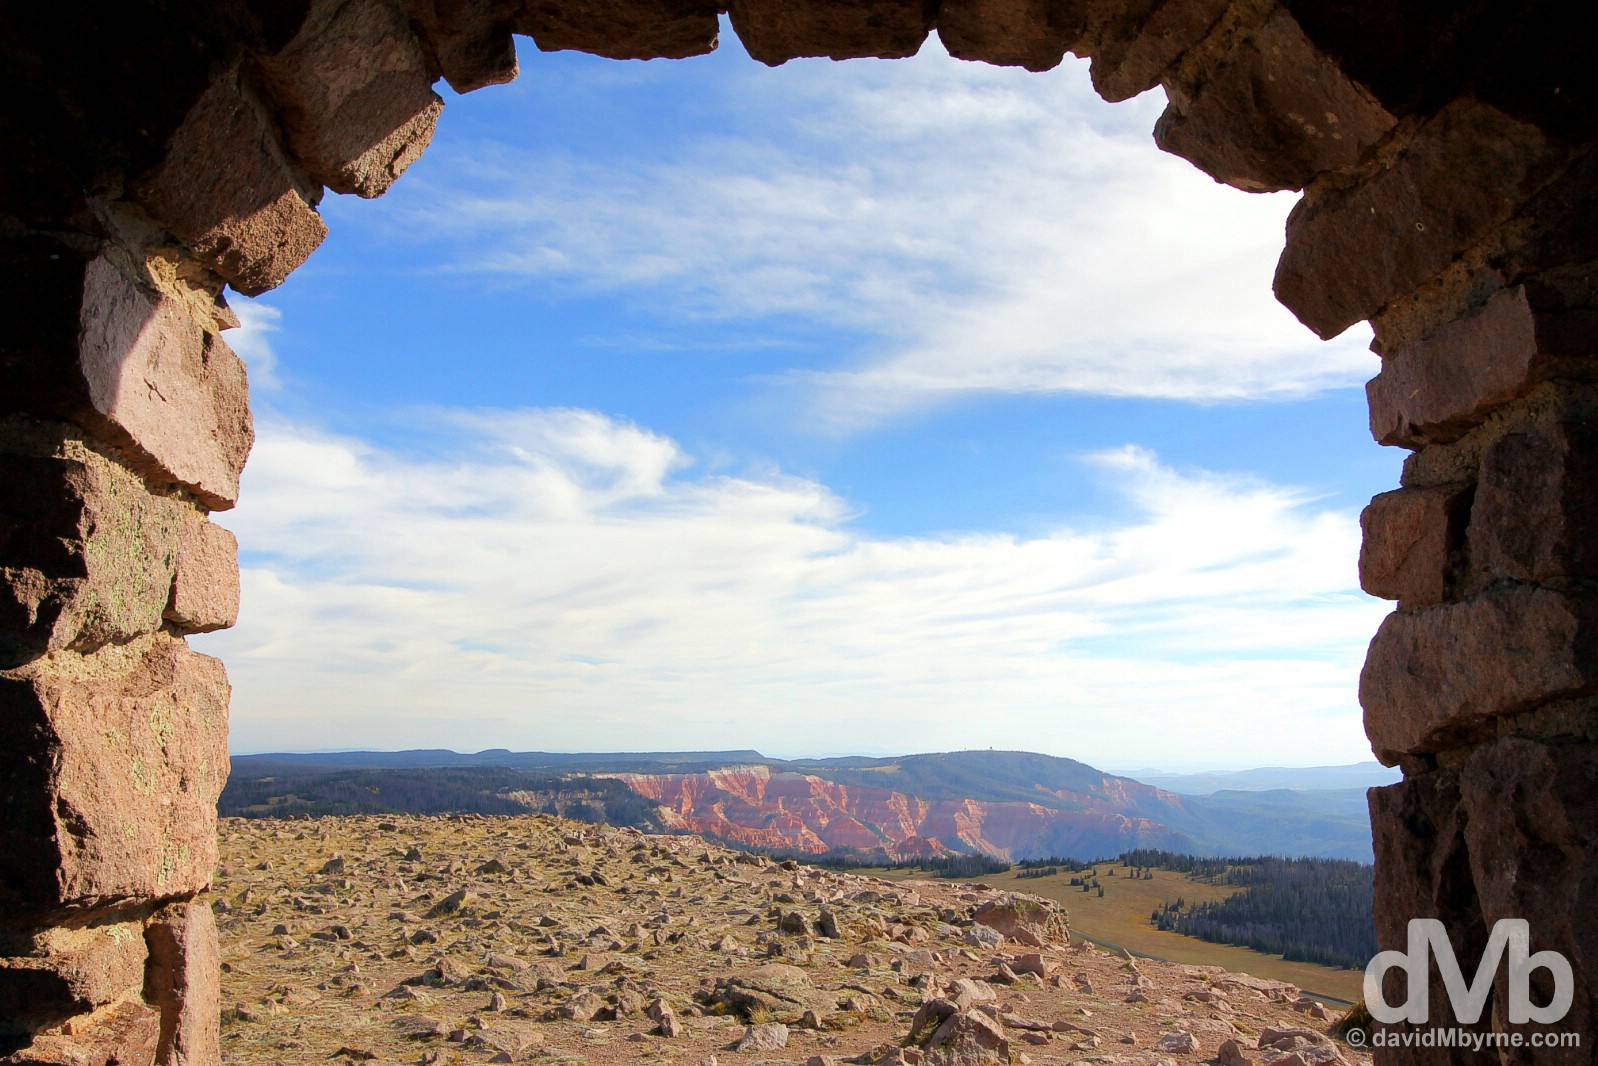 Cedar Breaks National Monument as seen from the summit of Brian Head off State Route 143, Utah's Patchwork Parkway, Iron County, southern Utah, USA. September 7, 2016.